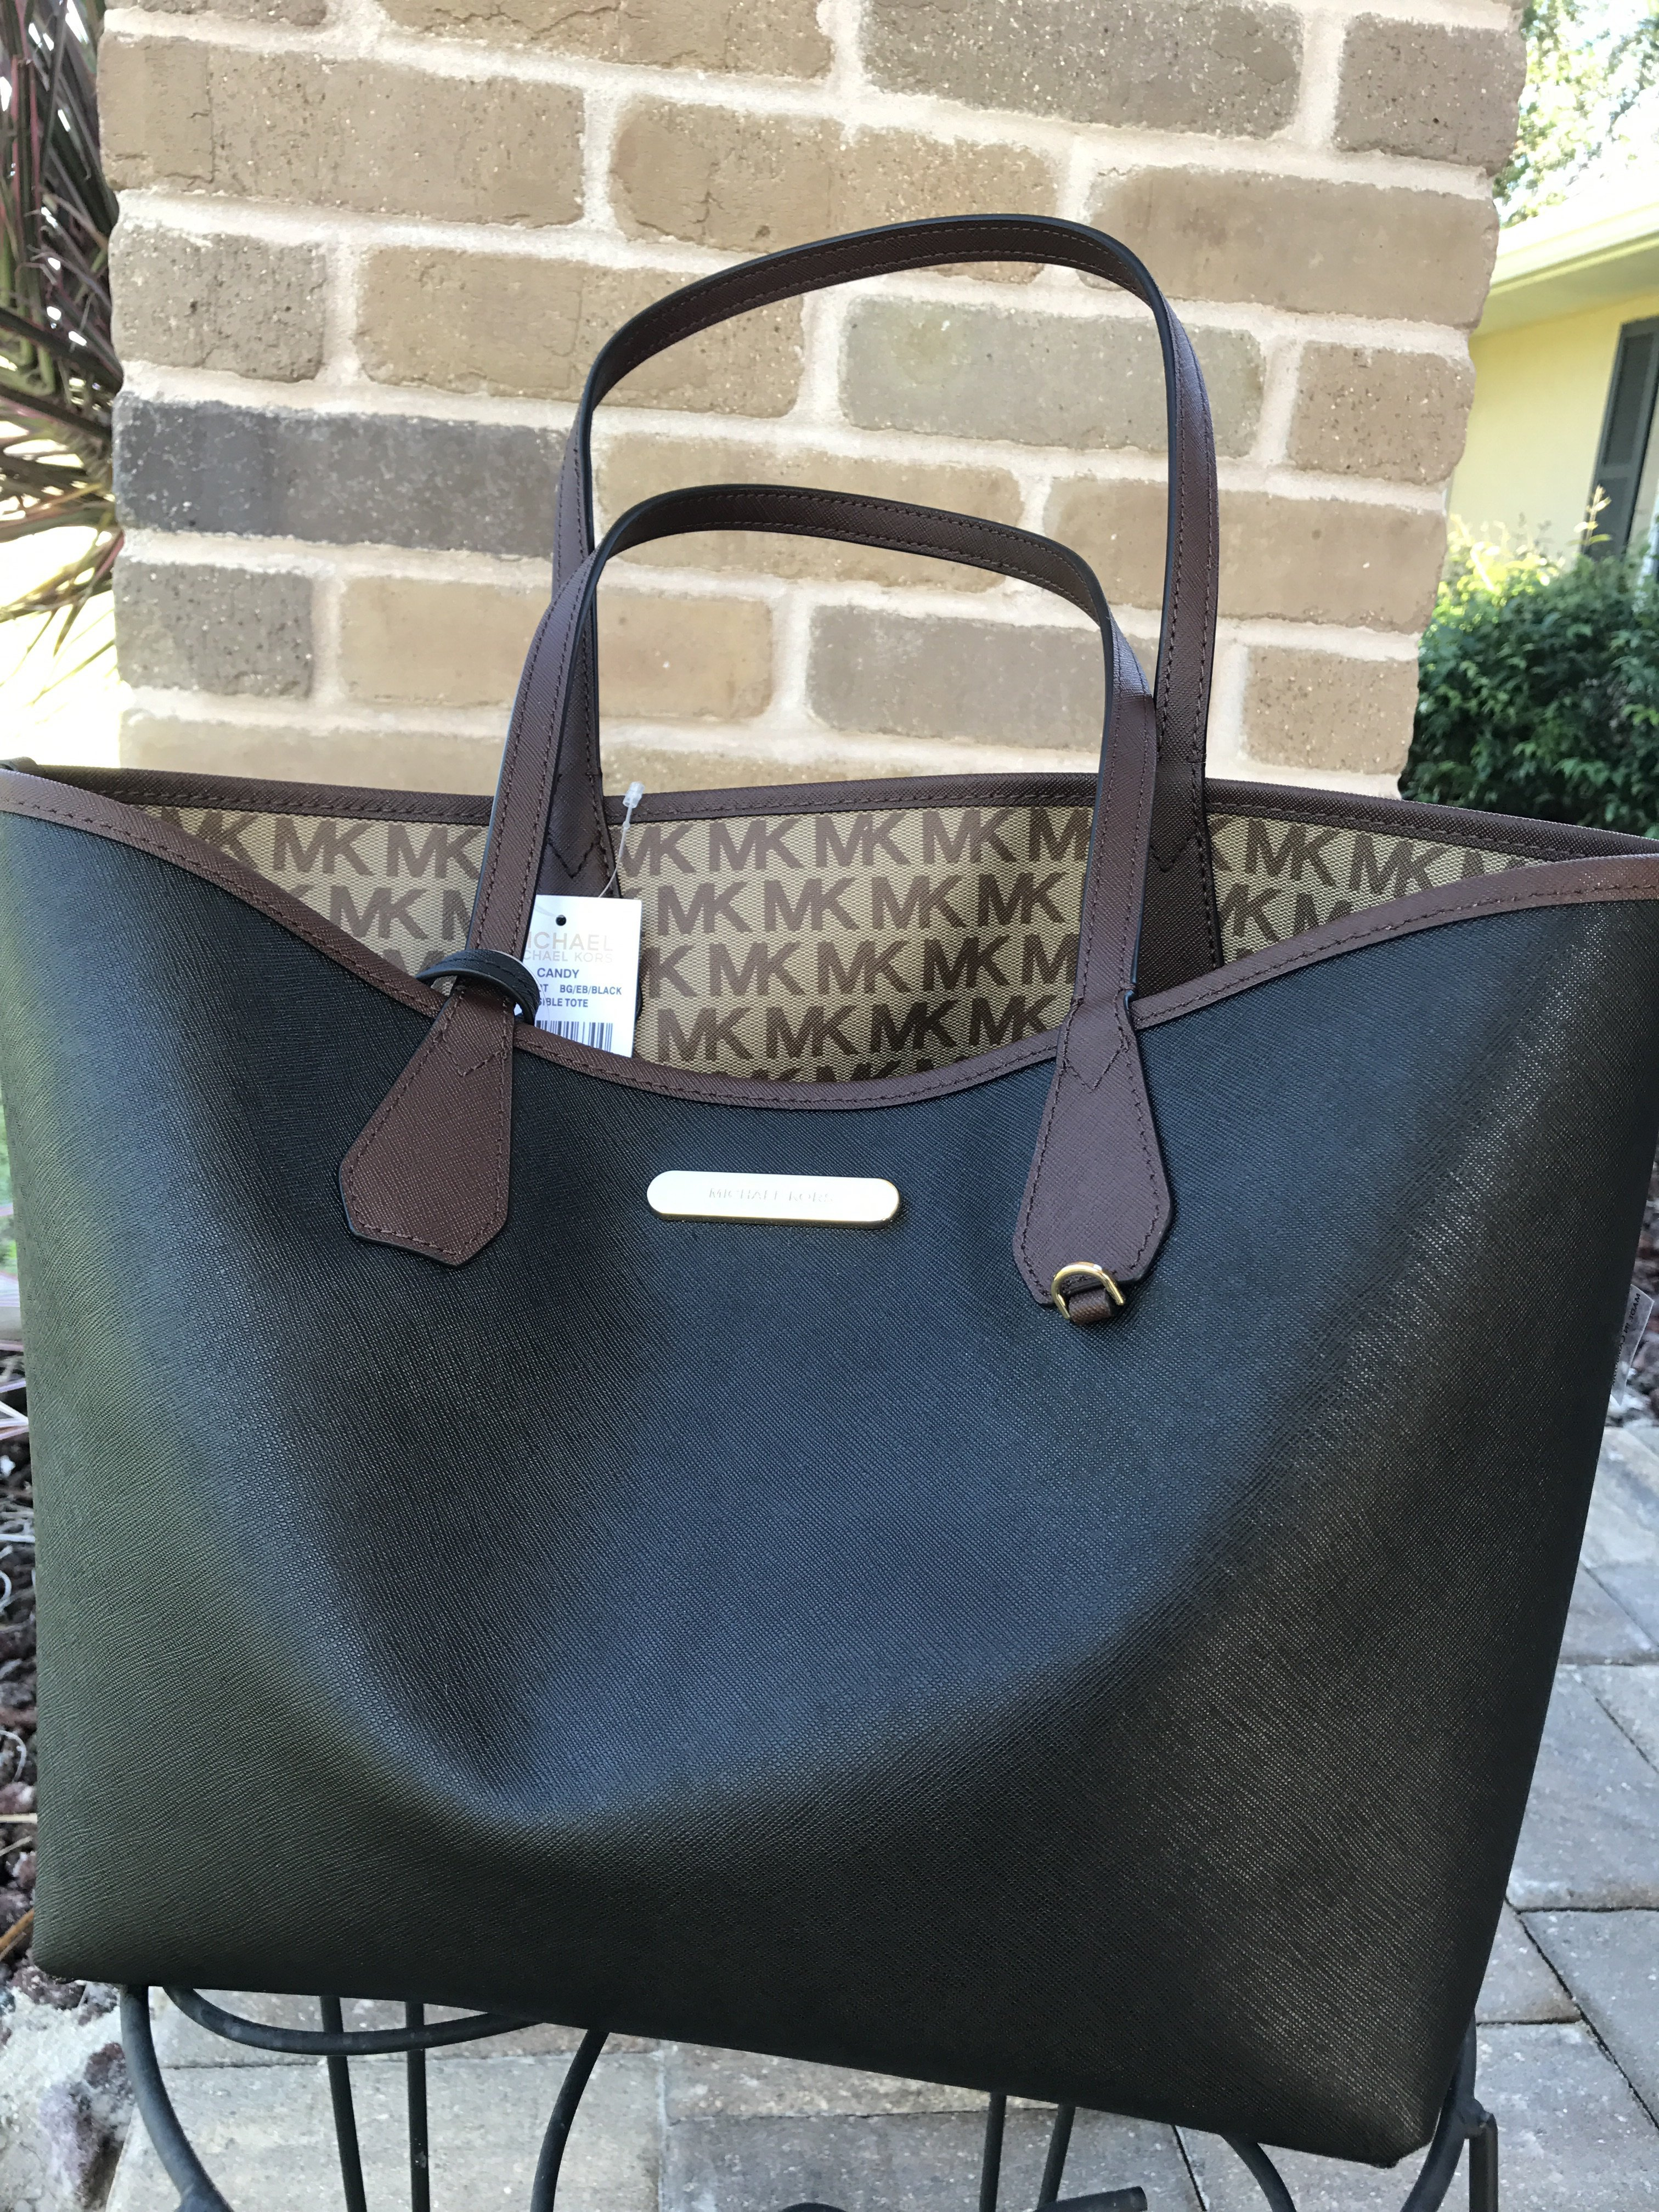 ff62fd75df59 ... top quality michael kors candy large reversible tote brown signature  black pouch mk logo walmart 691ba